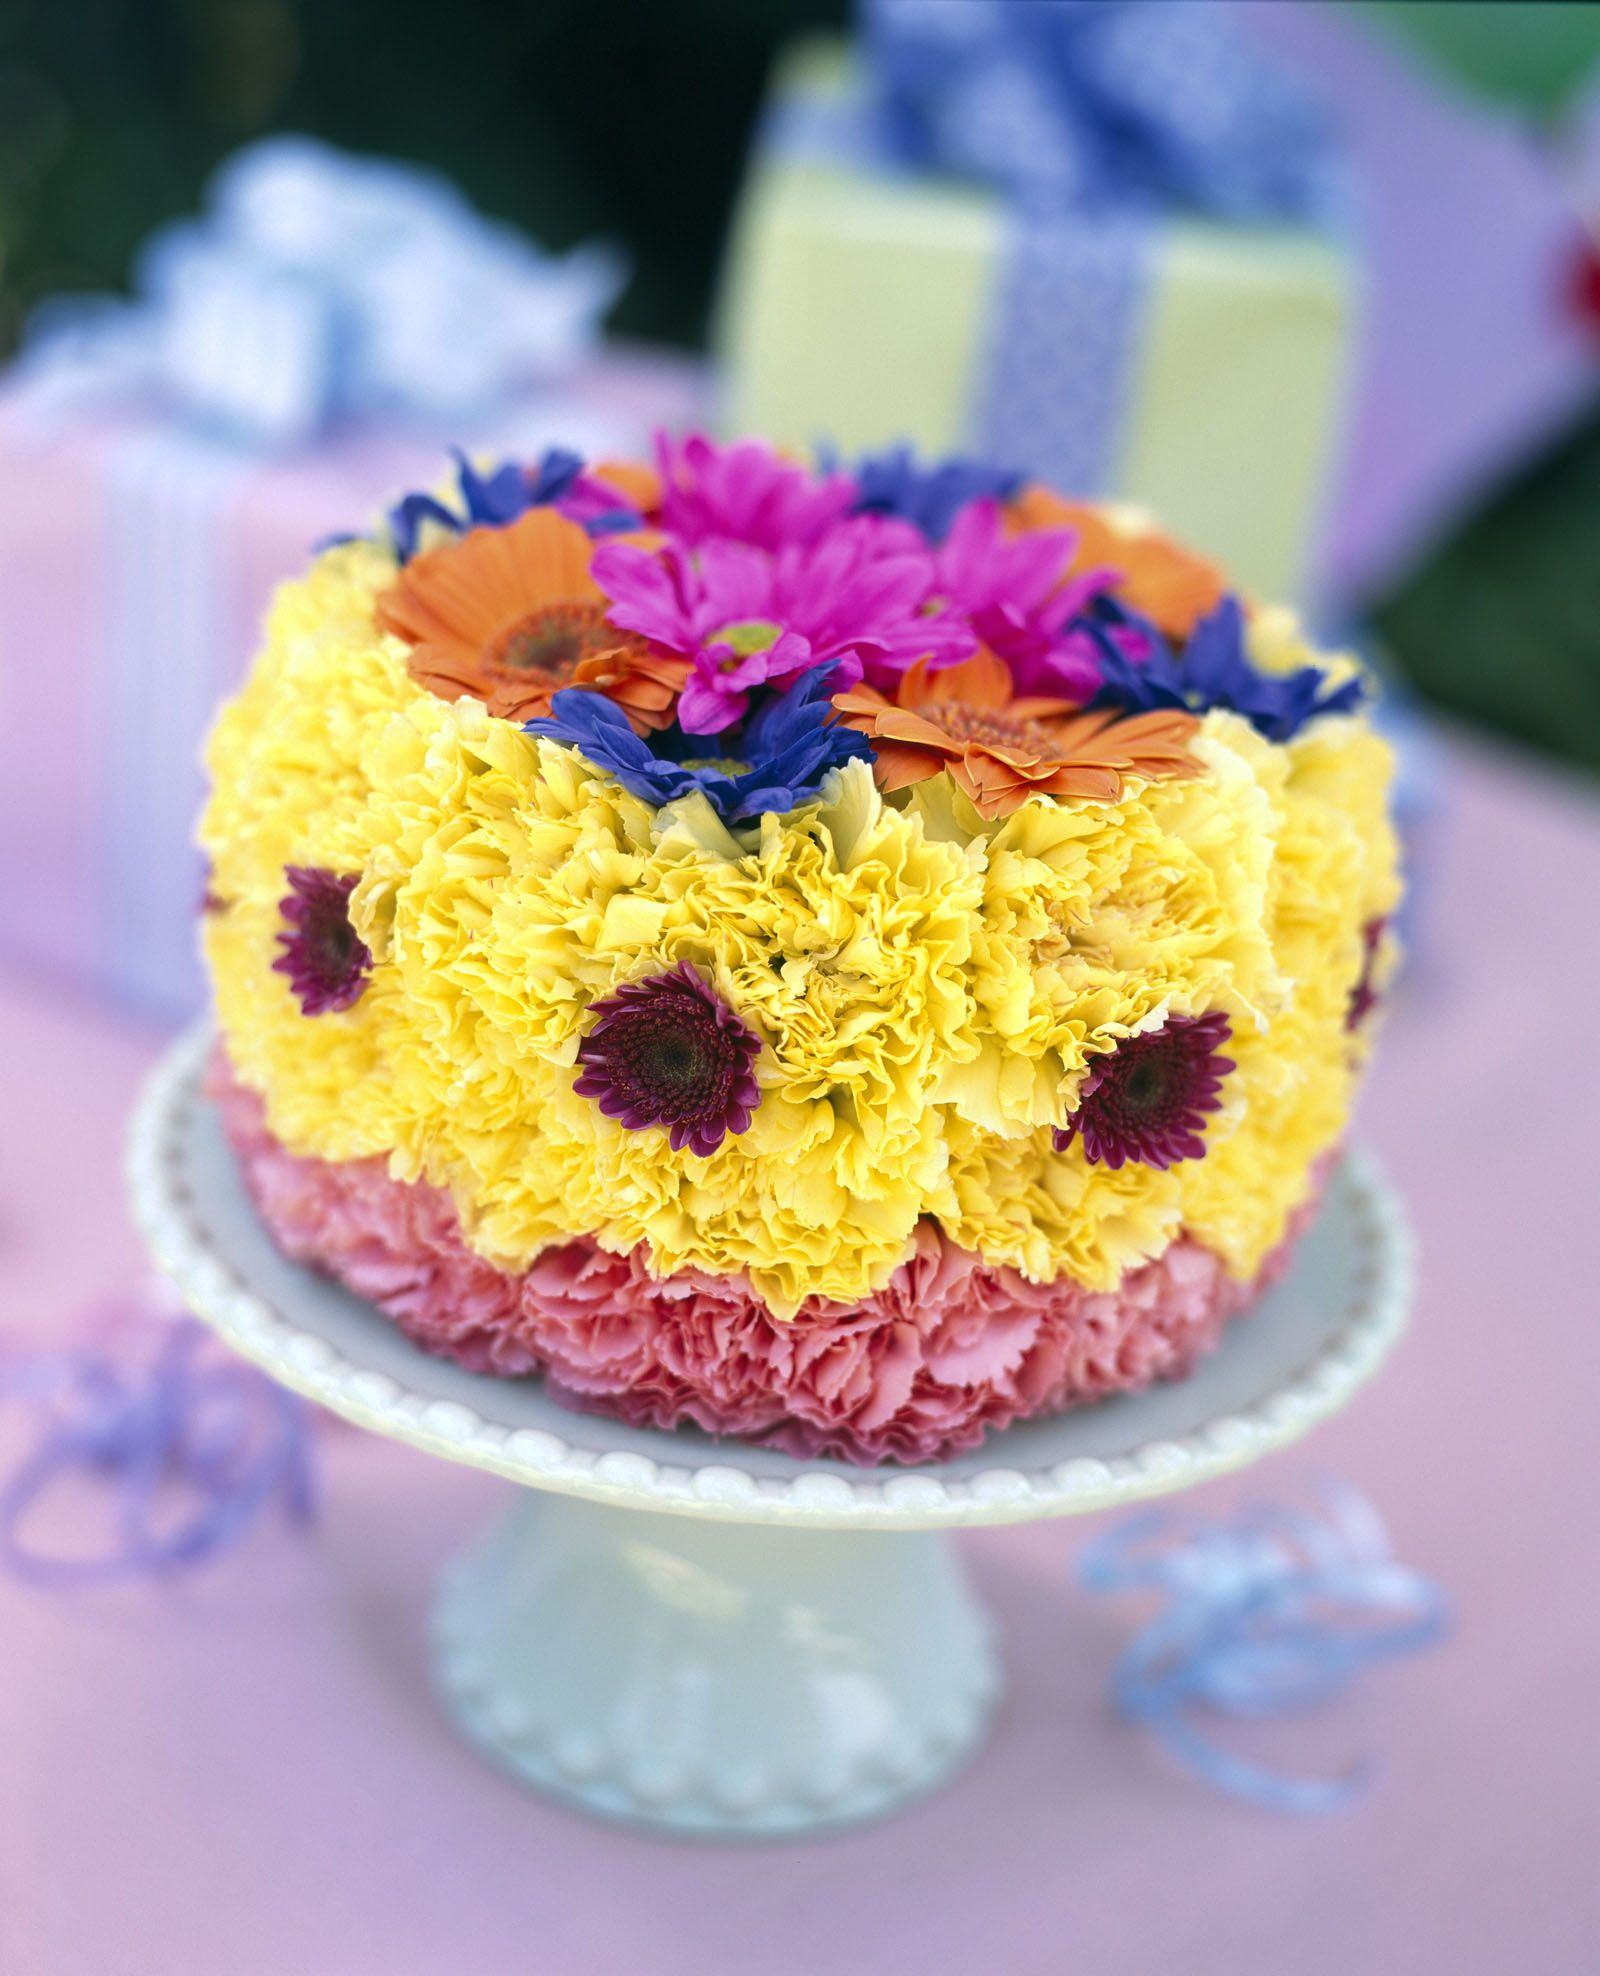 Happy birthday michelle i baked you a birthday cake flower happy birthday michelle i baked you a birthday cake flower arrangement dhlflorist Image collections